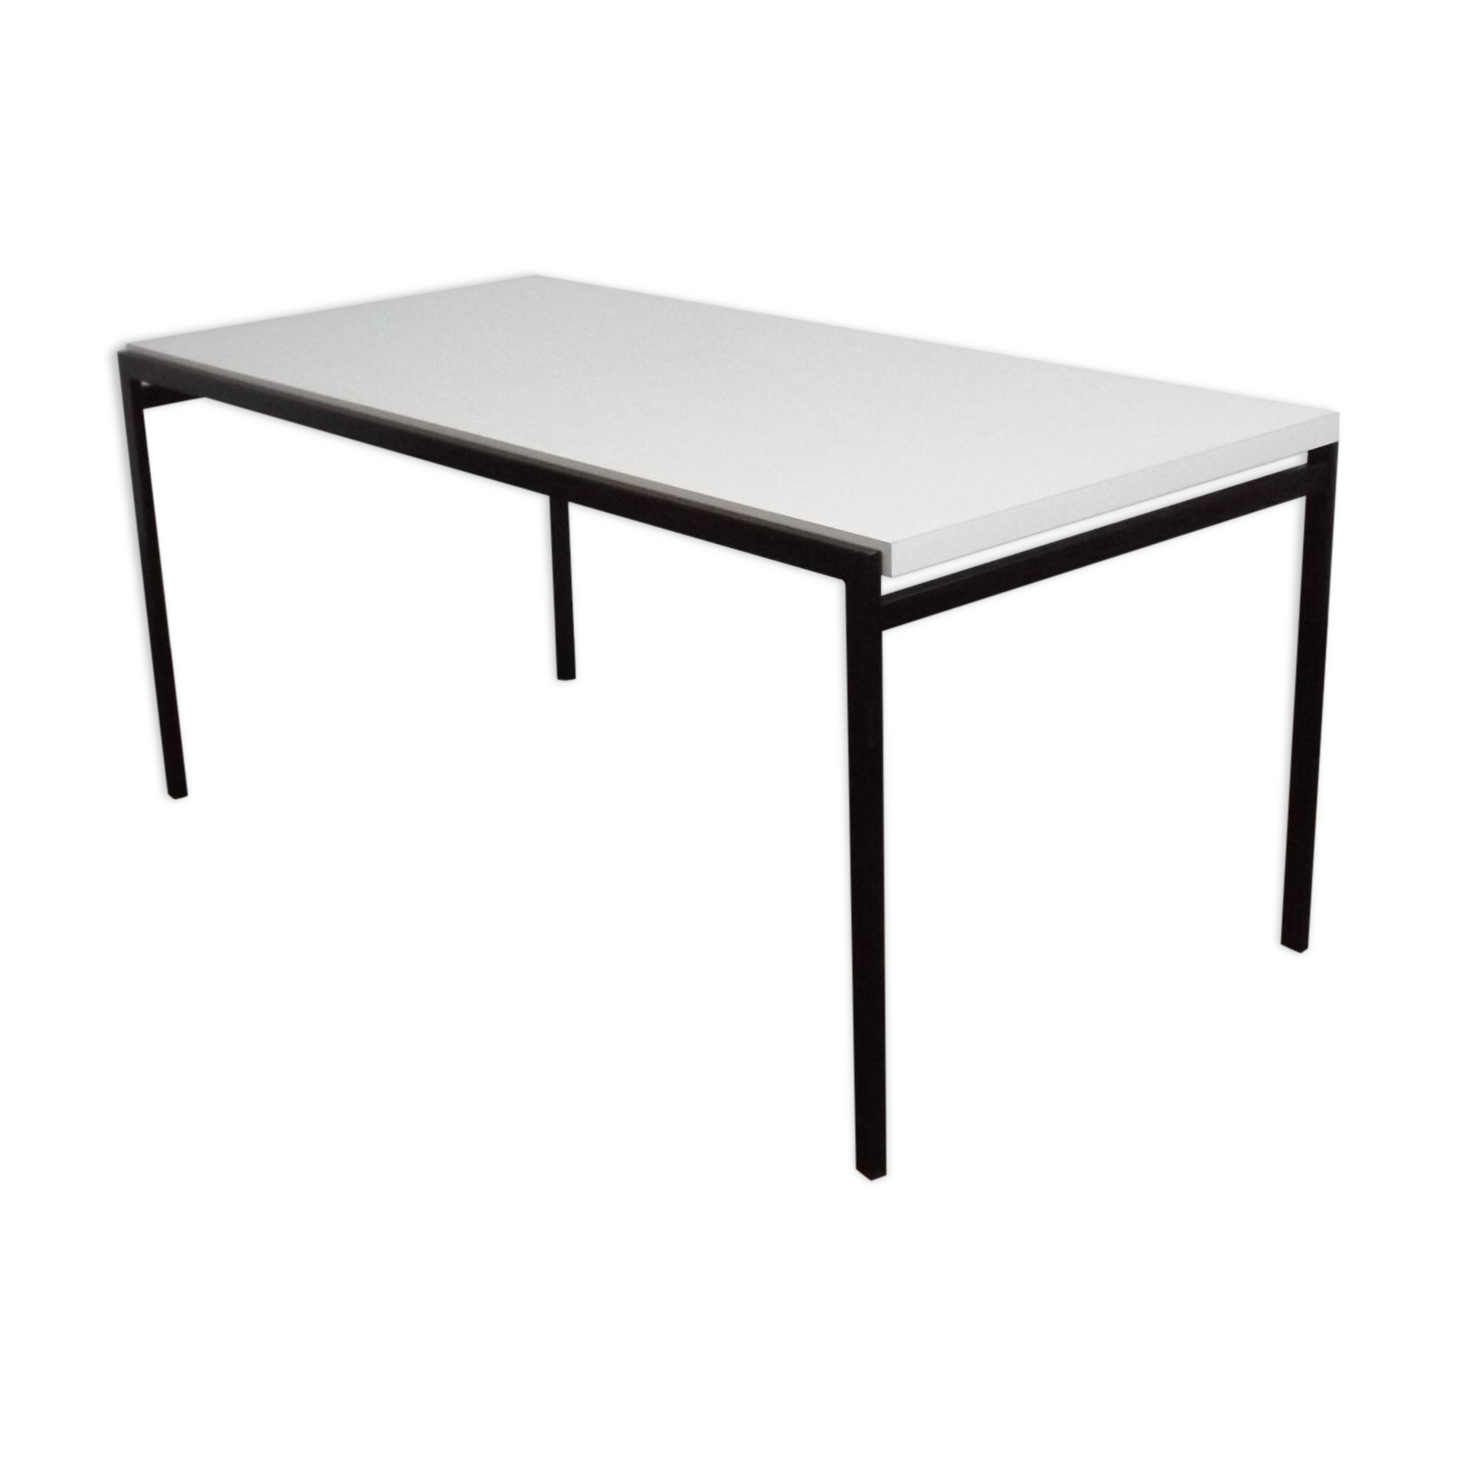 Table de salle a manger originale fabulous table de salle - Table a manger originale ...